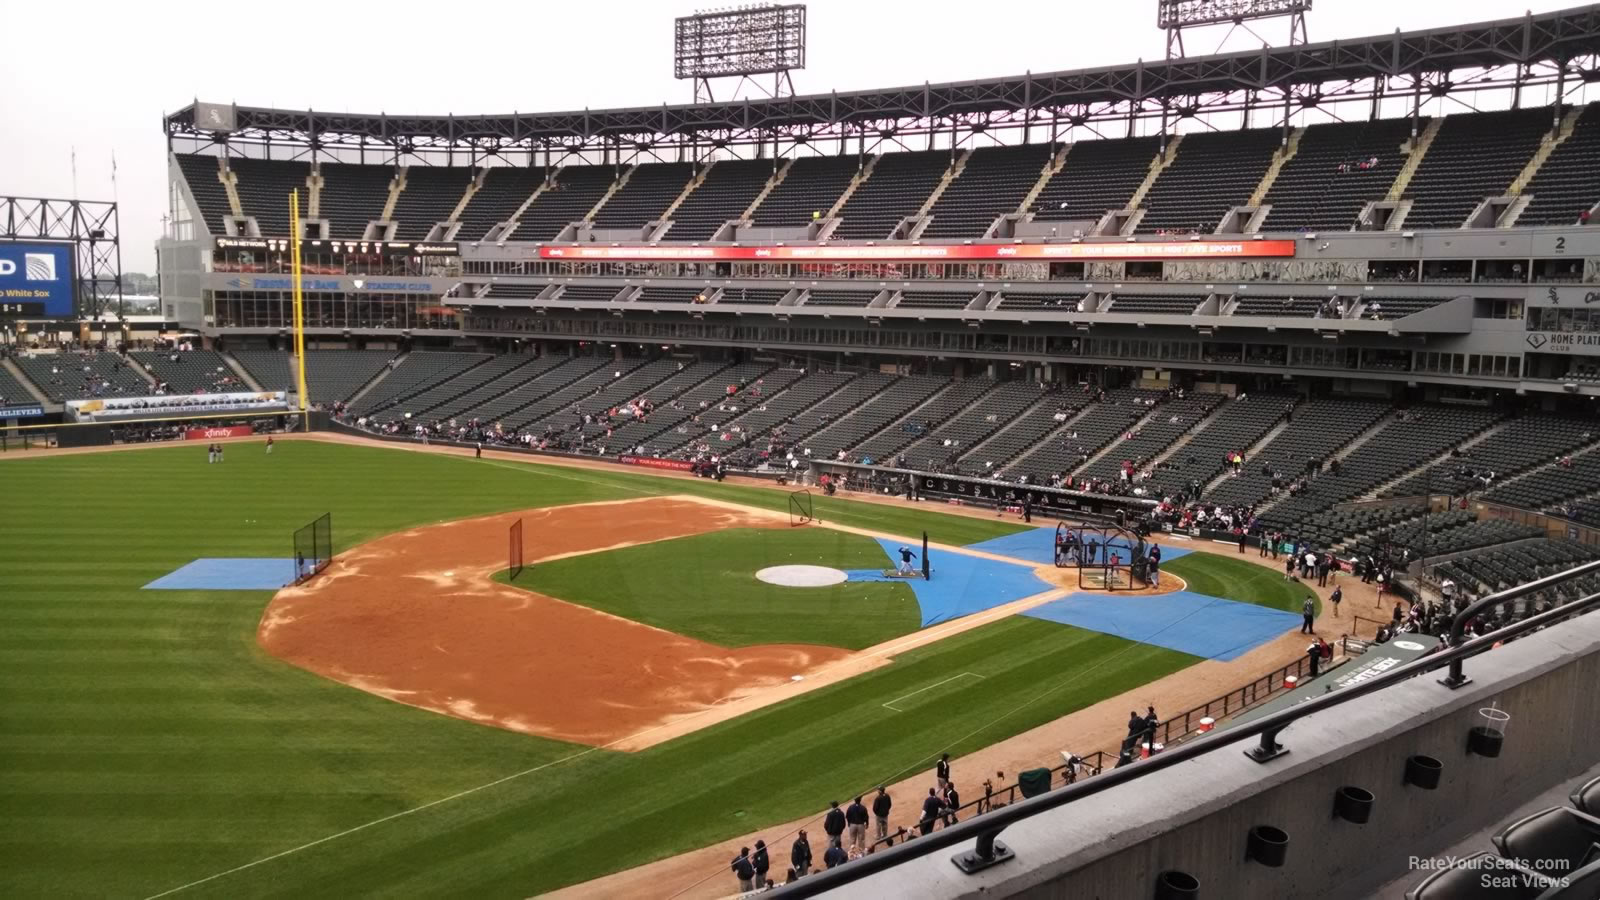 Seat View for Guaranteed Rate Field Section 346, Row 3